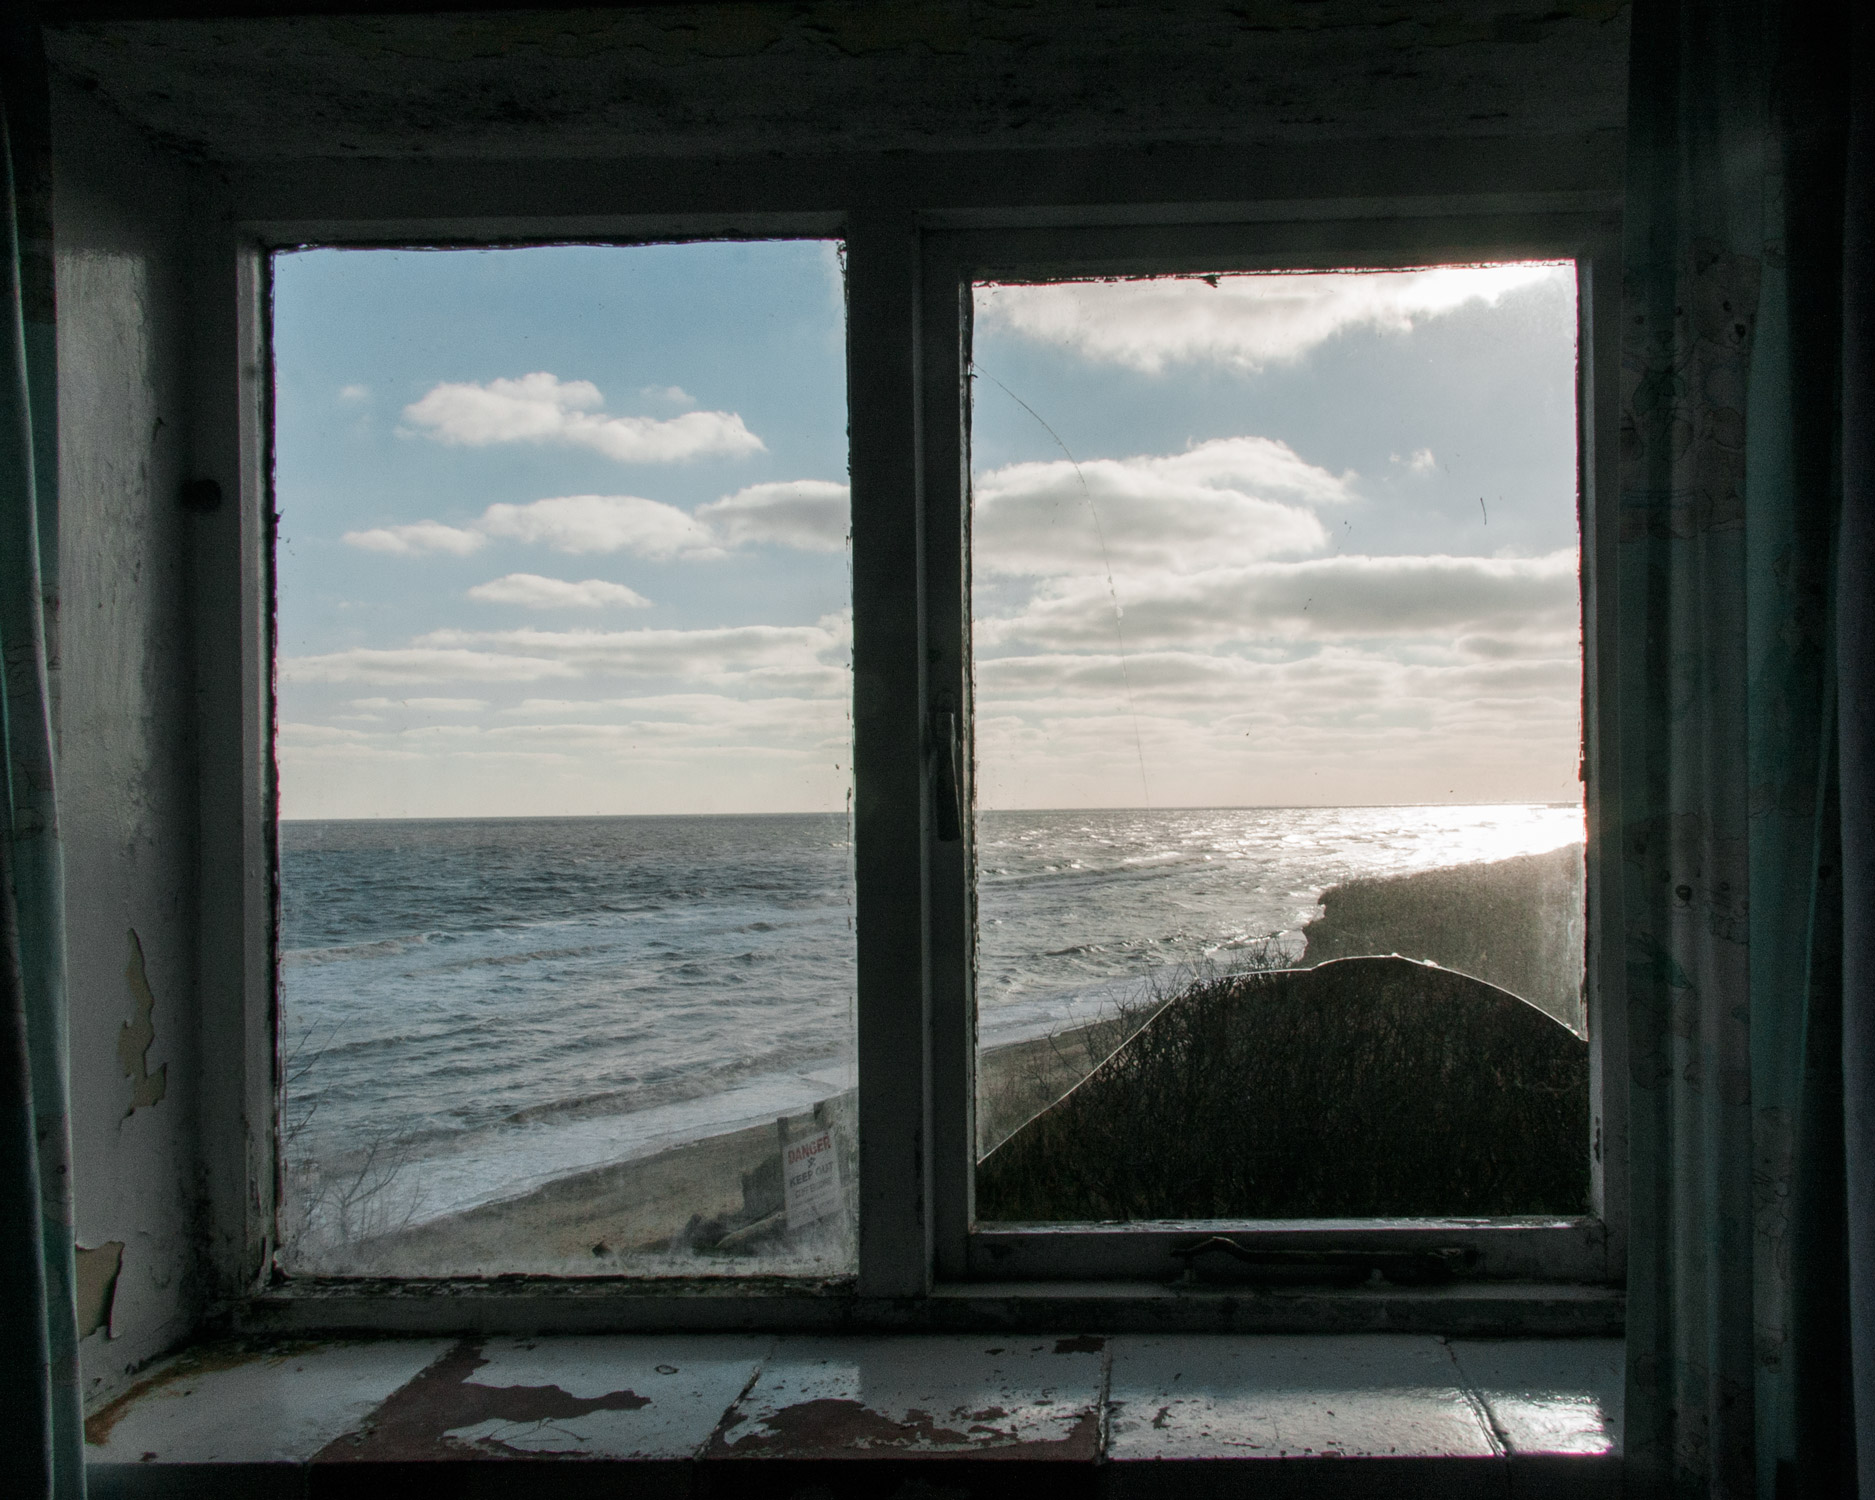 The view from an abandoned house in Eastern Bavents, Suffolk. While defence works at the larger, more popular seaside resorts continues apace, this tiny community's increasingly desperate demands for protection go unheeded by the authorities.